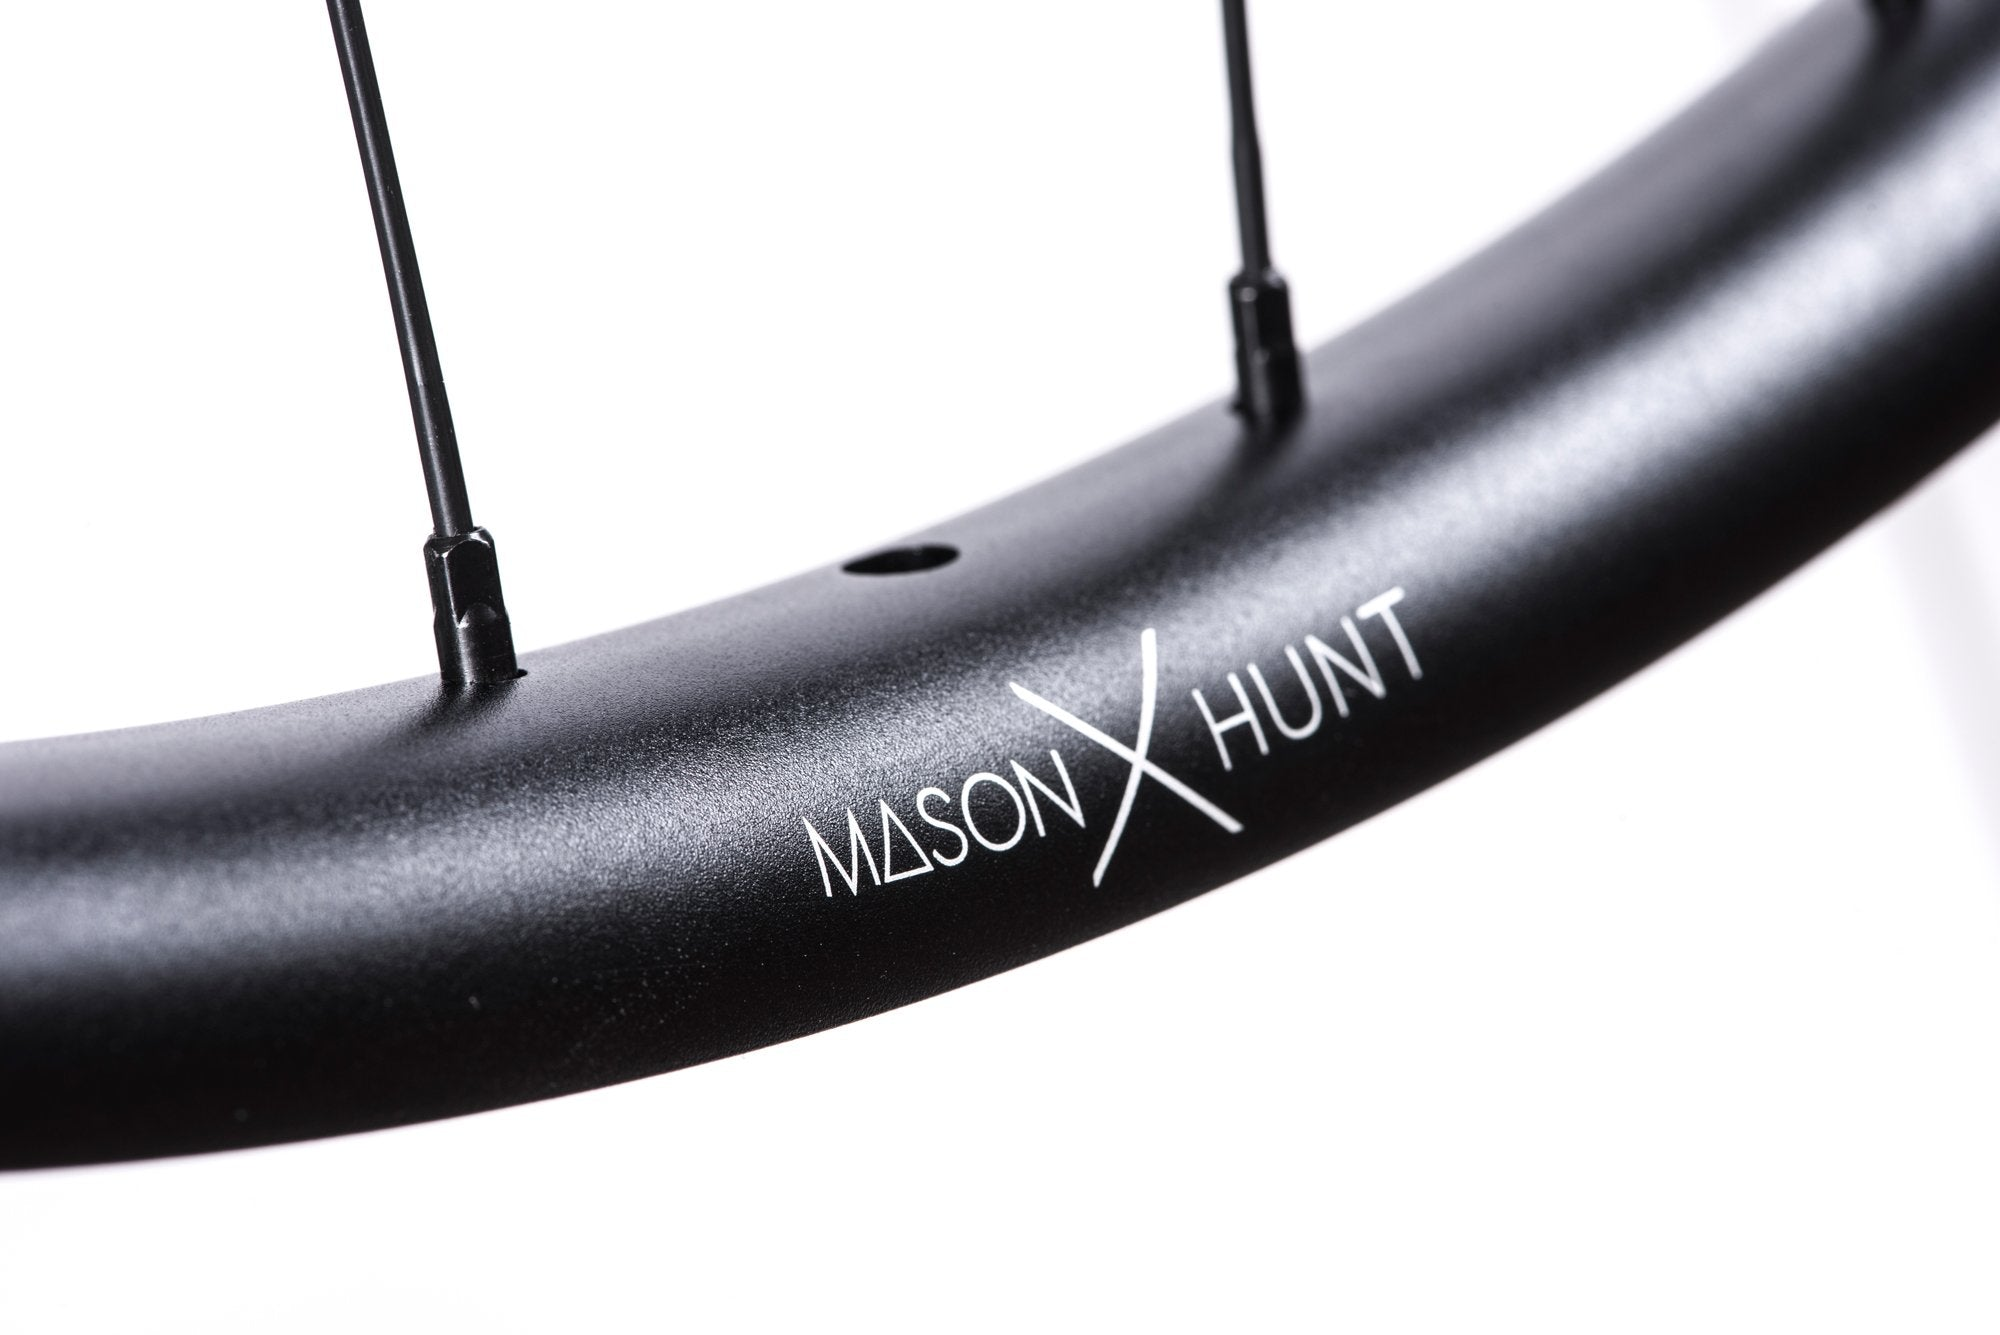 <html><h1>Nipples</h1><i>We have chosen top of the line, triple butted Pillar Spokes with increased reinforcement at the spoke head. Not only are these spokes extremely lightweight, they are also able to provide a greater degree of elasticity when put under increased stress. The Pillar Spoke Reinforcement (PSR) puts more material at the spoke head, just before the J-Bend to prevent failure in this stress area.</i></html>